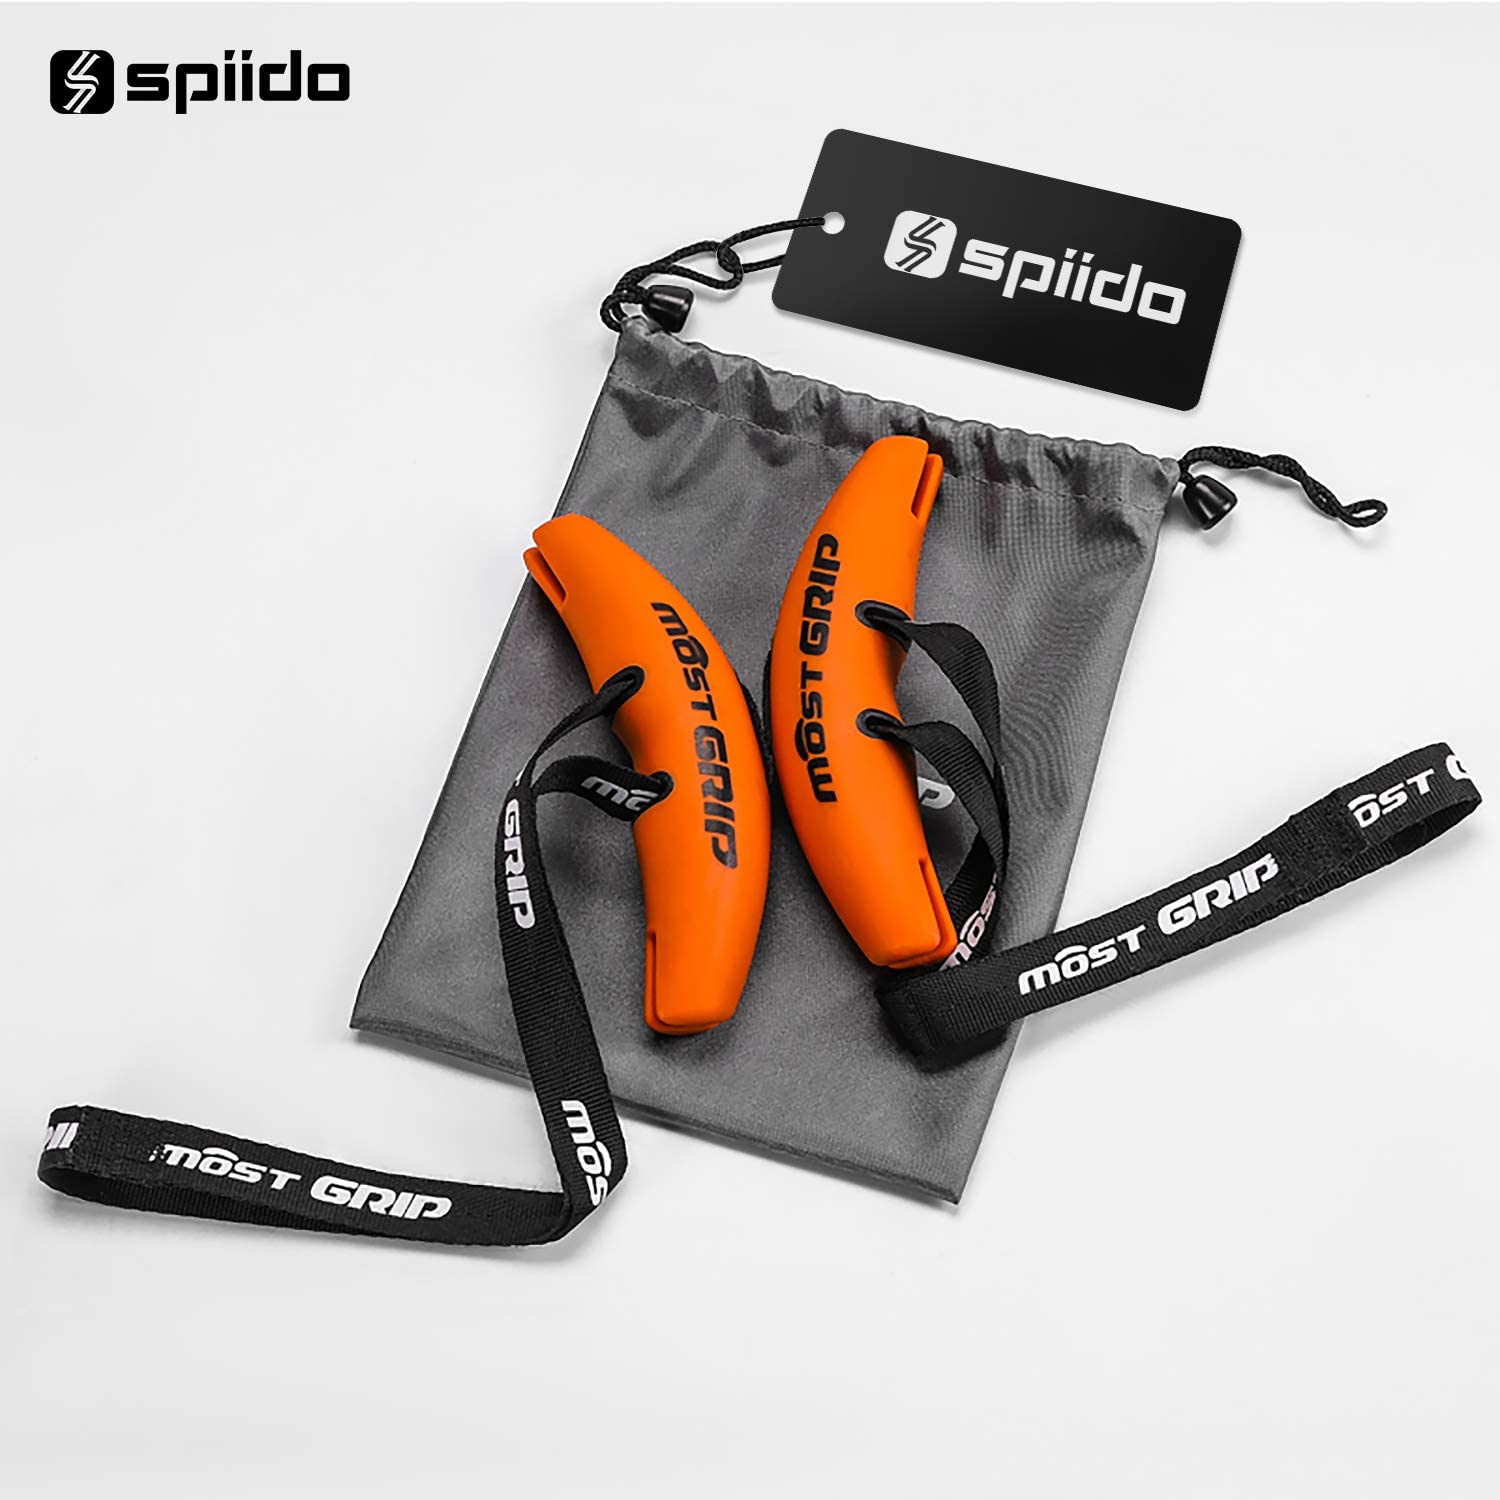 Resistance Bands Pull-up Bars Spiido Upgraded Heavy Duty Exercise Handles Training Grip Strength Sling Trainer for Cable Machines Barbells and Pulling Machines